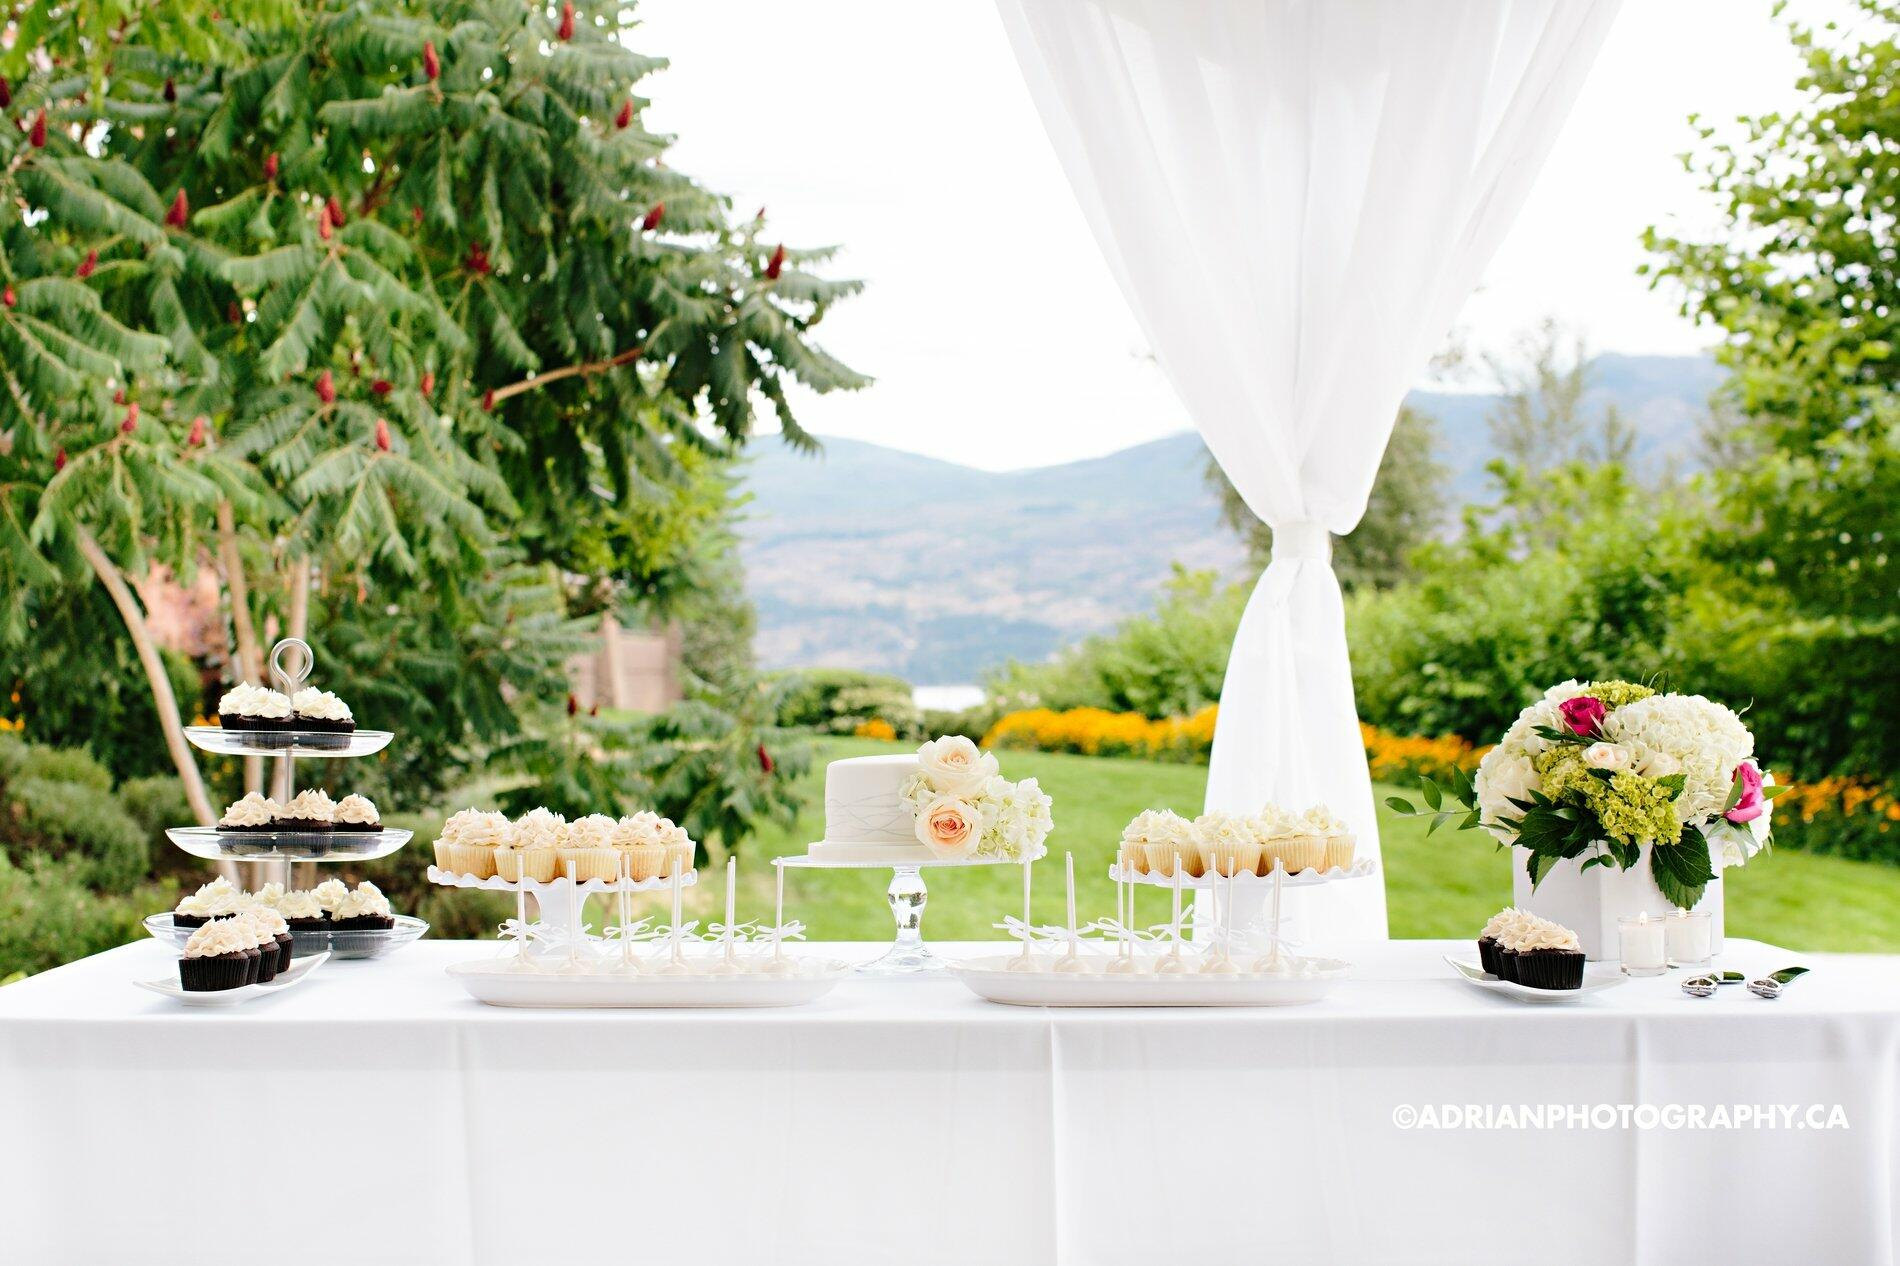 Wedding Gardens Dessert Table